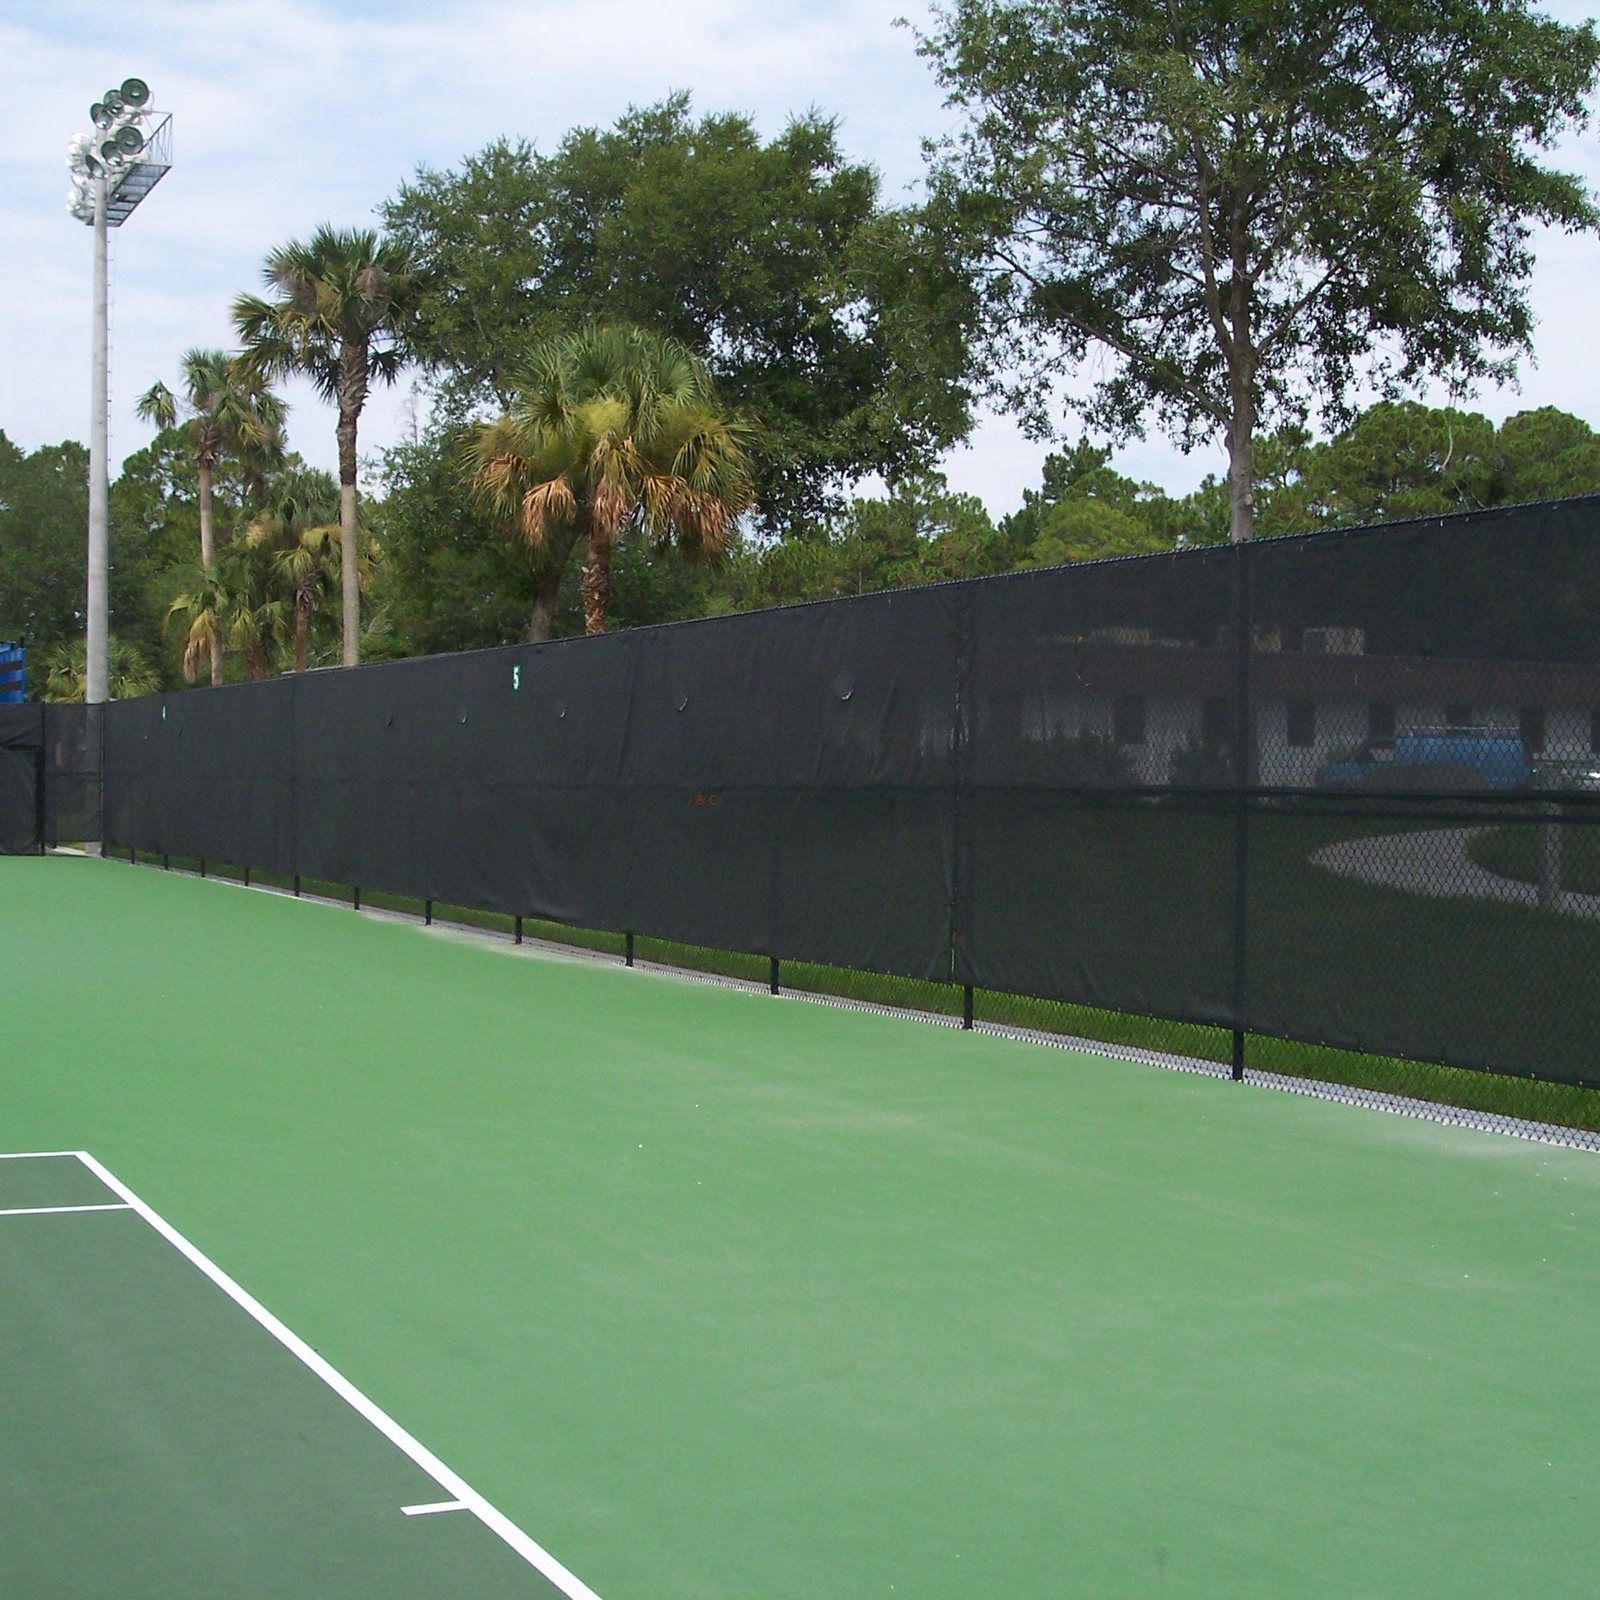 Fencing the Tennis Court